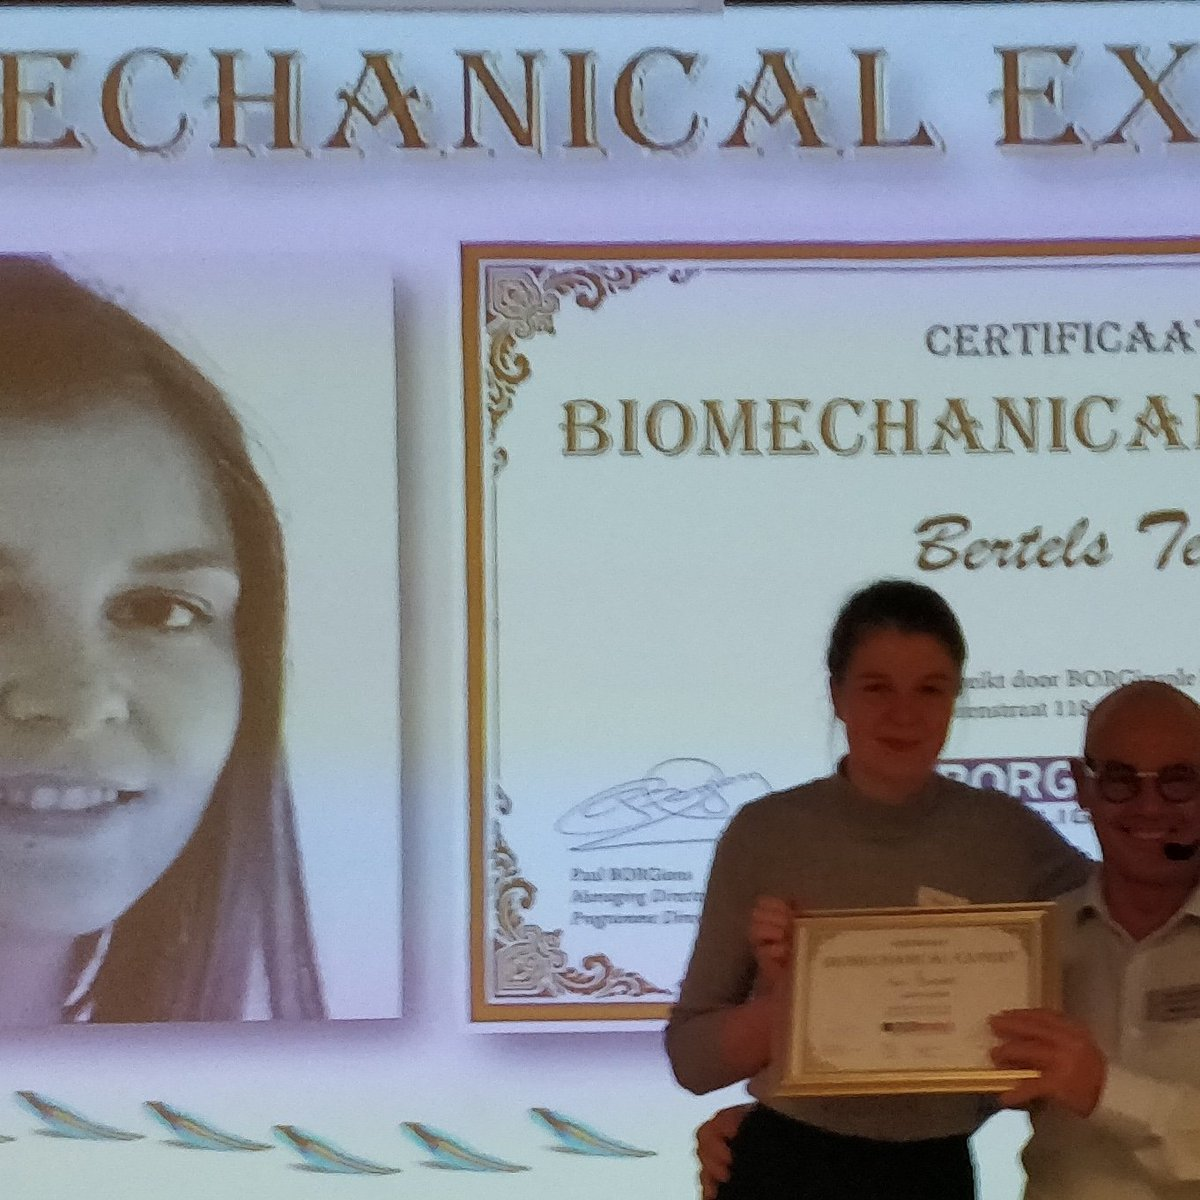 Congratulations Tess Bertels as #Biomechanical Expert https://t.co/BwgW5PPU5k